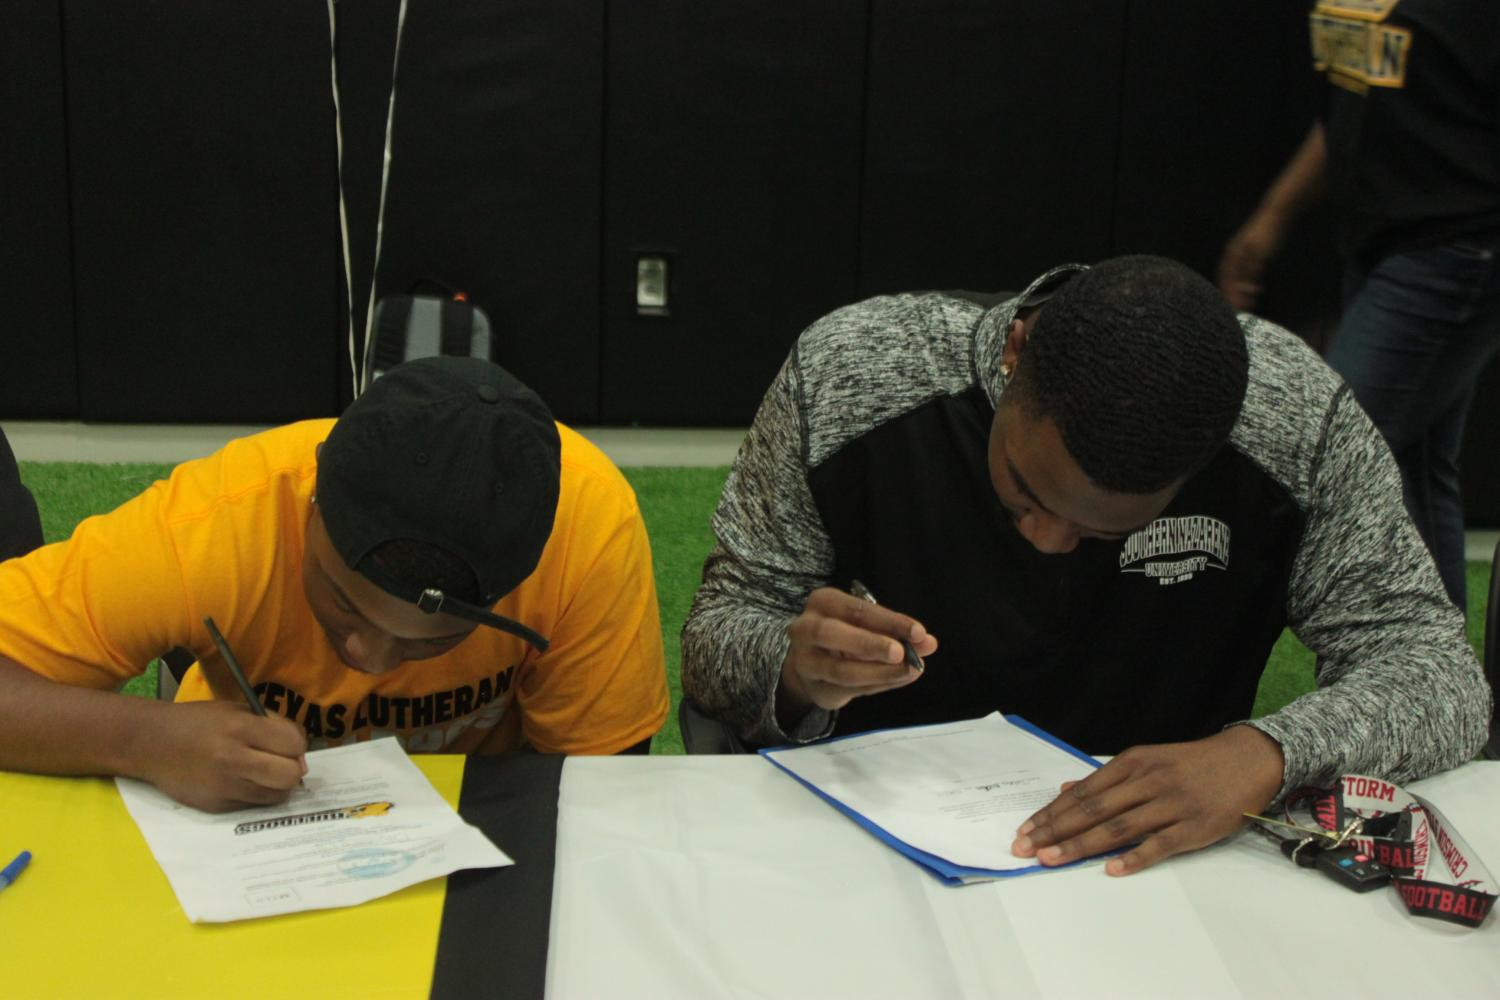 Khari+Clarkson+and+Nick+Caruthers+both+signed+their+scholarship+to+Texas+Lutheran+University.